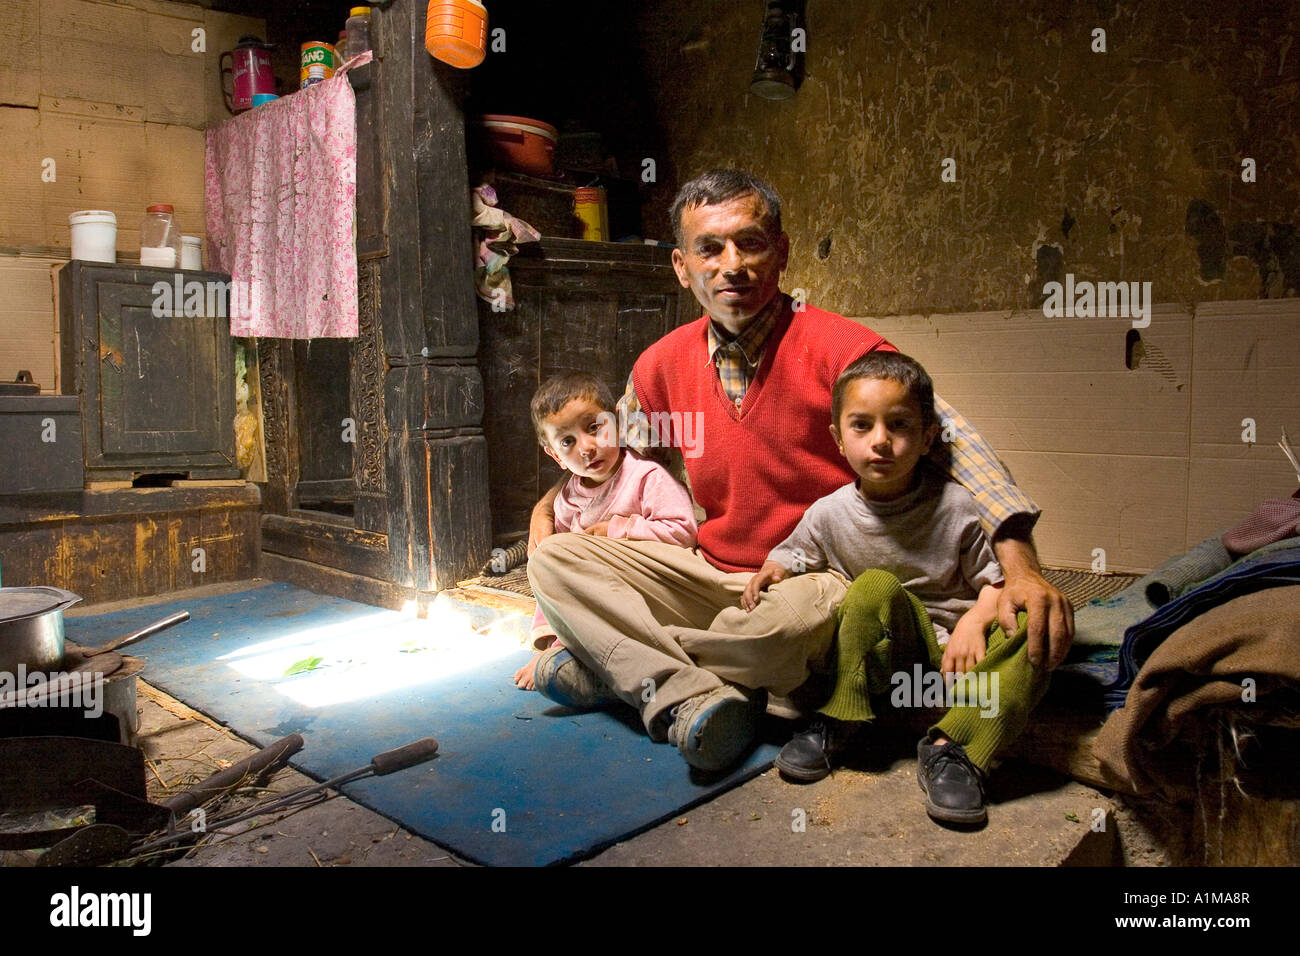 Father with his children, Karimabad, Pakistan - Stock Image